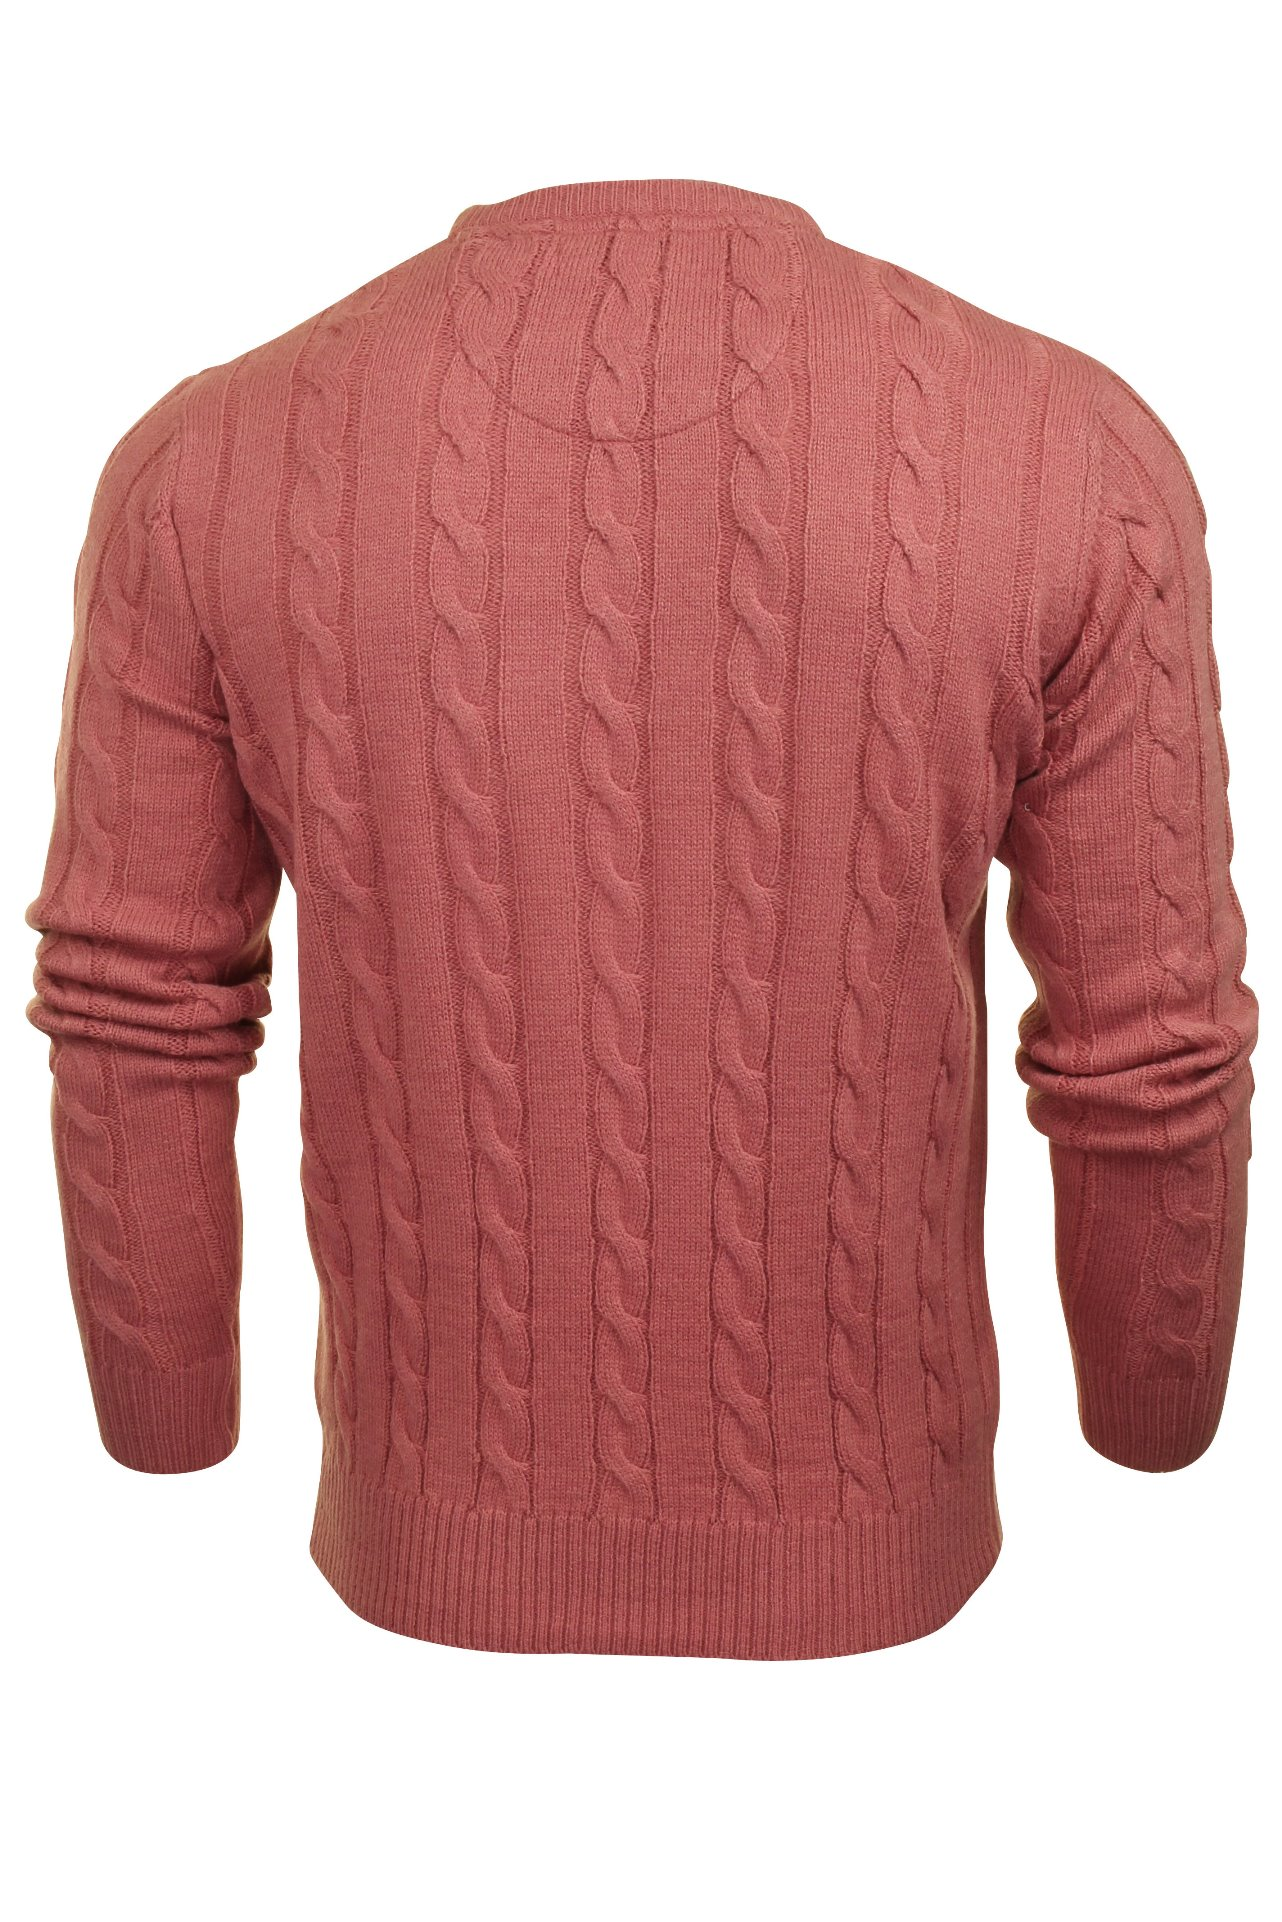 Brave-Soul-039-Maoism-039-Mens-Cable-Knit-Jumper thumbnail 14